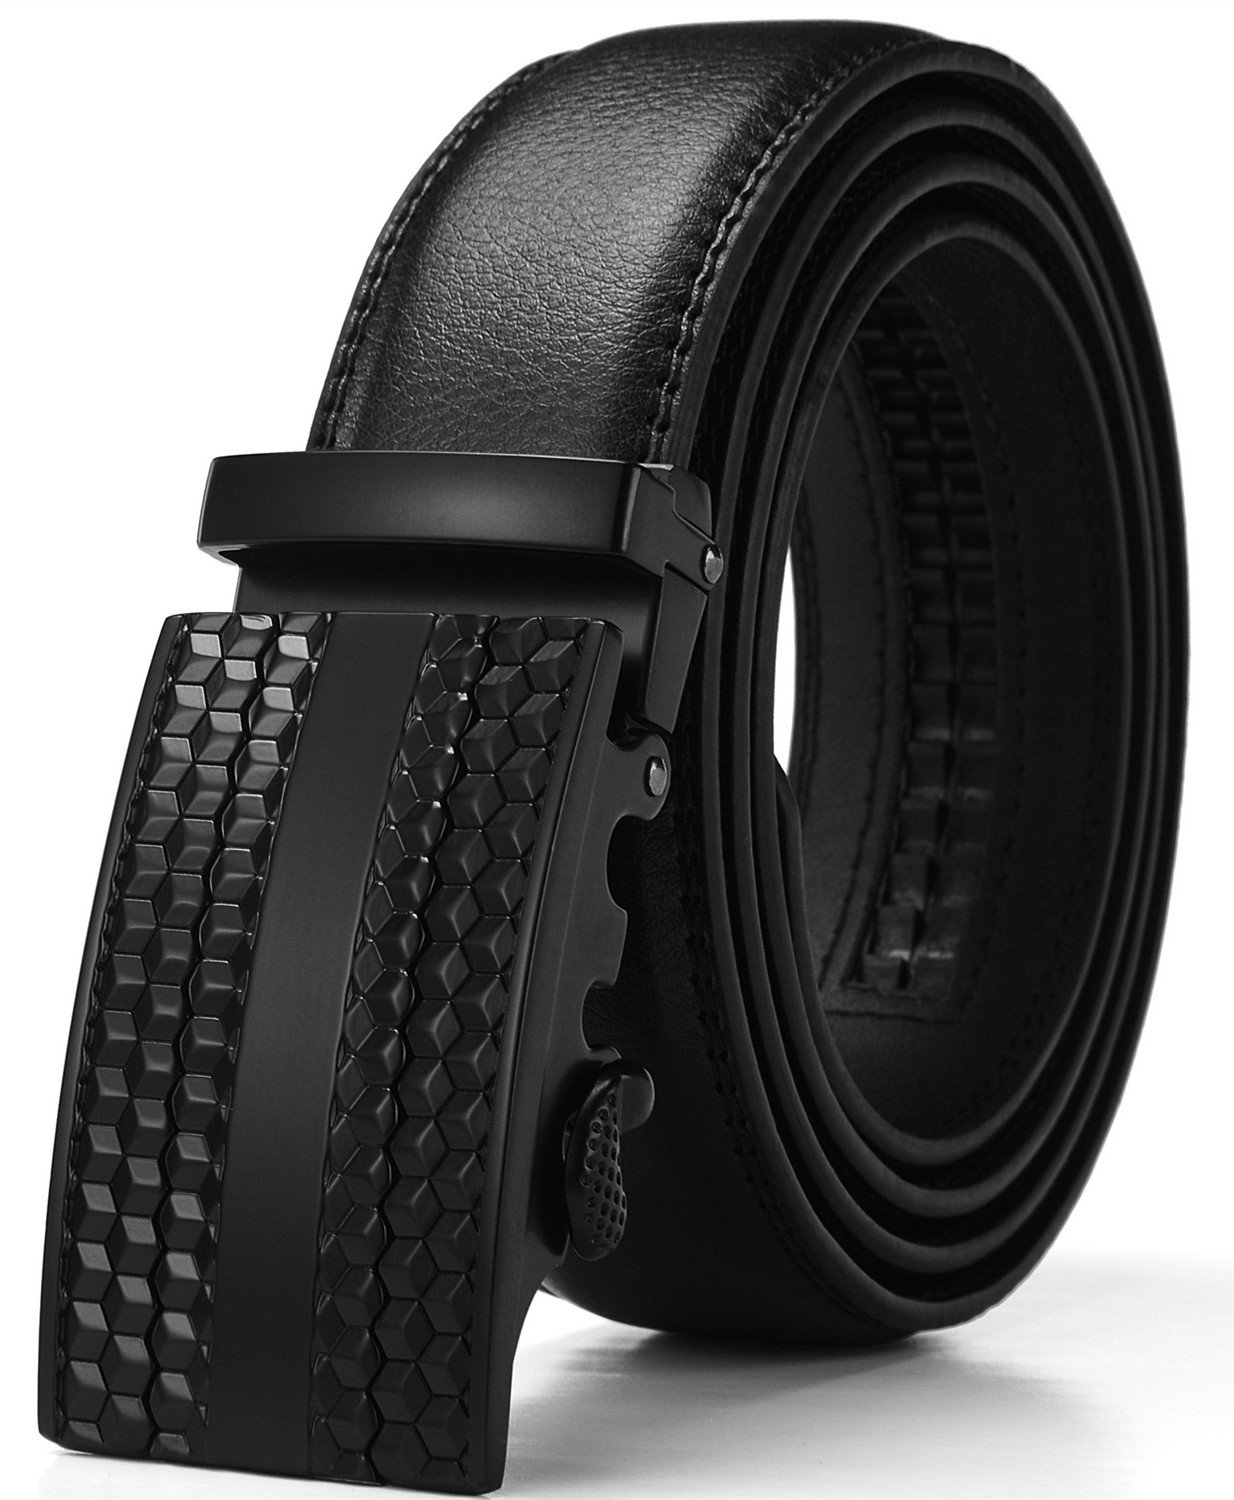 XDeer Men's Leather Ratchet Dress Belts with Automatic Buckle Gift Box (Waist:36-42, Black2)